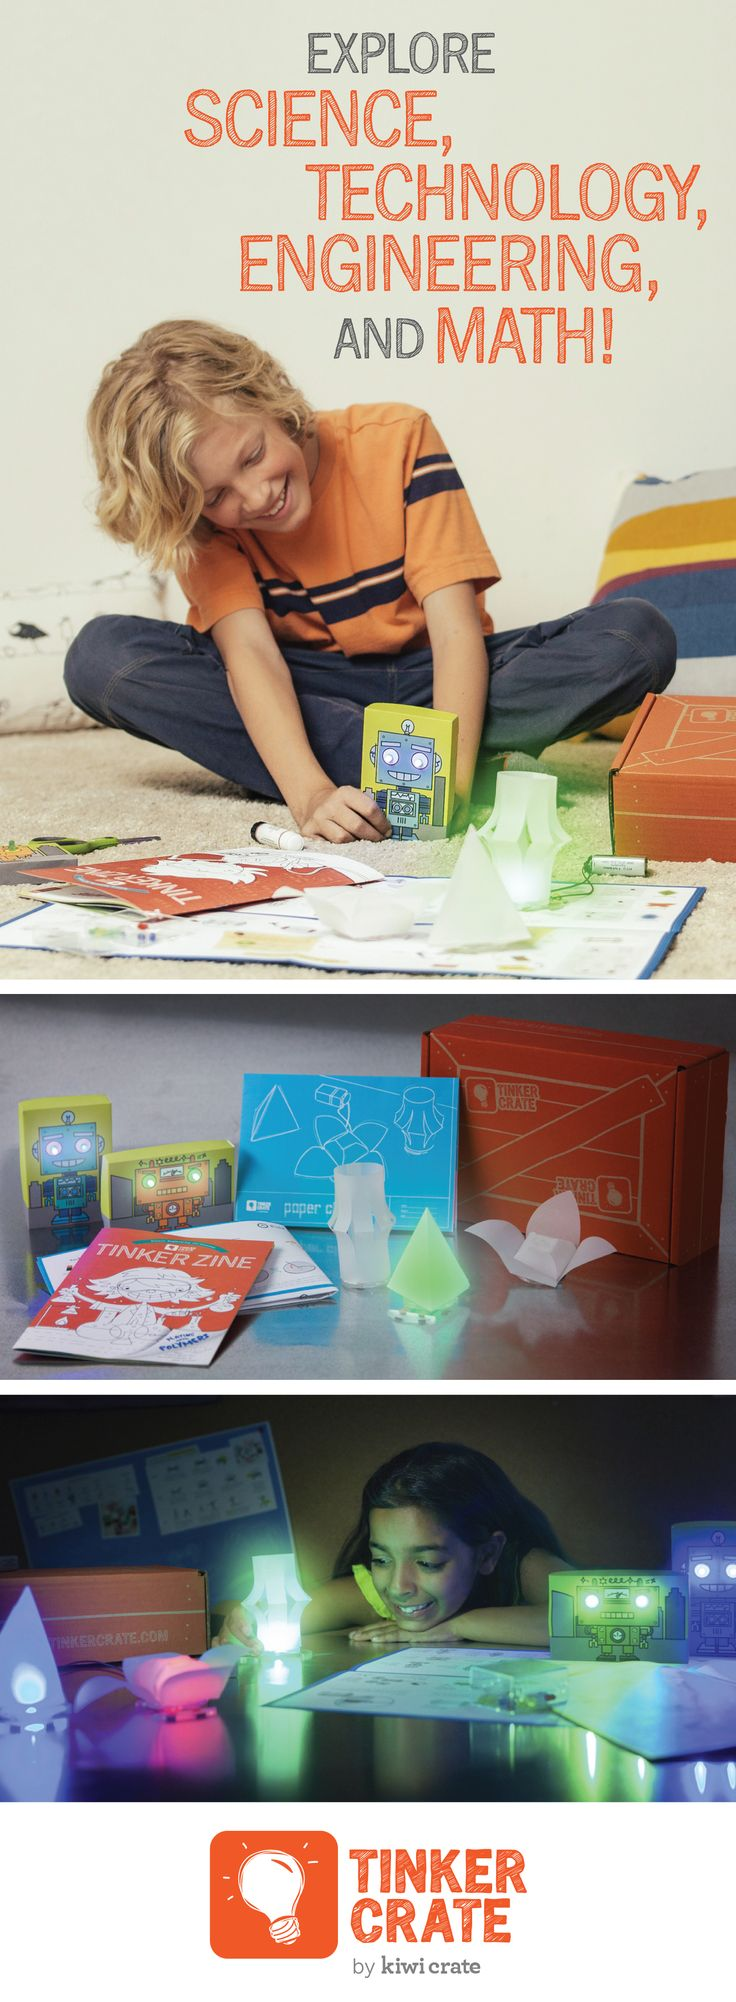 With a Tinker Crate subscription you'll receive materials and inspiration for awesome science and engineering activities. We develop new project themes every month so your kid will continue learning new concepts!   Join today and experiment with circuits to peek into the amazing world of electricity!   Save 30% off the first month of your subscription! Hurry, offer ends September 30,2015.